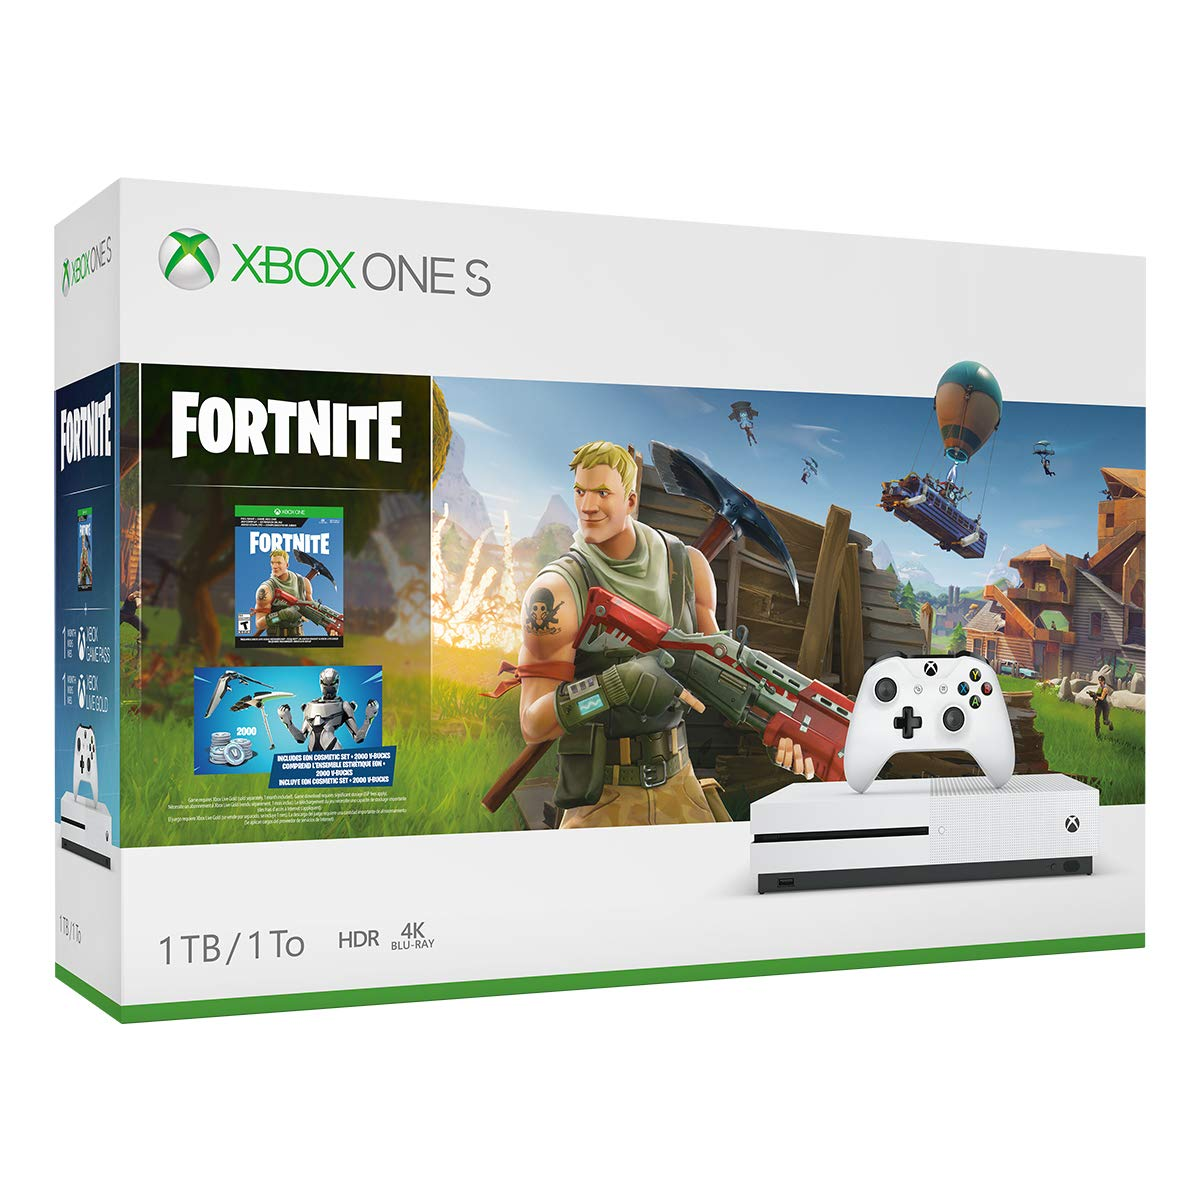 Xbox One S 1TB Console - Fortnite Bundle (Discontinued) by Microsoft (Image #2)